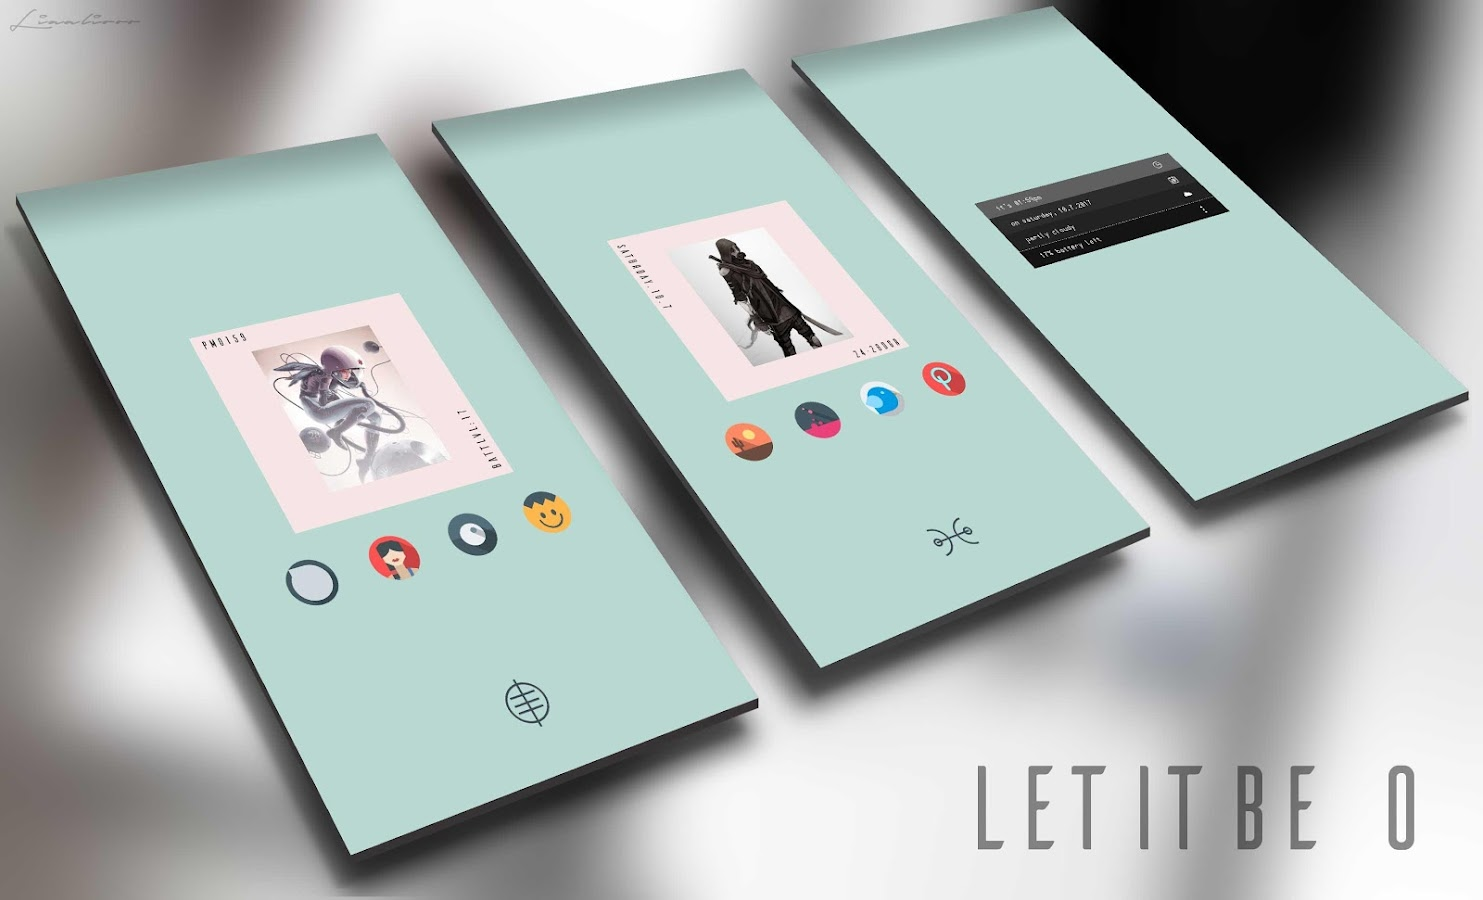 Let It Be O - Pixel 2 Minimalist Icon Pack Screenshot 6